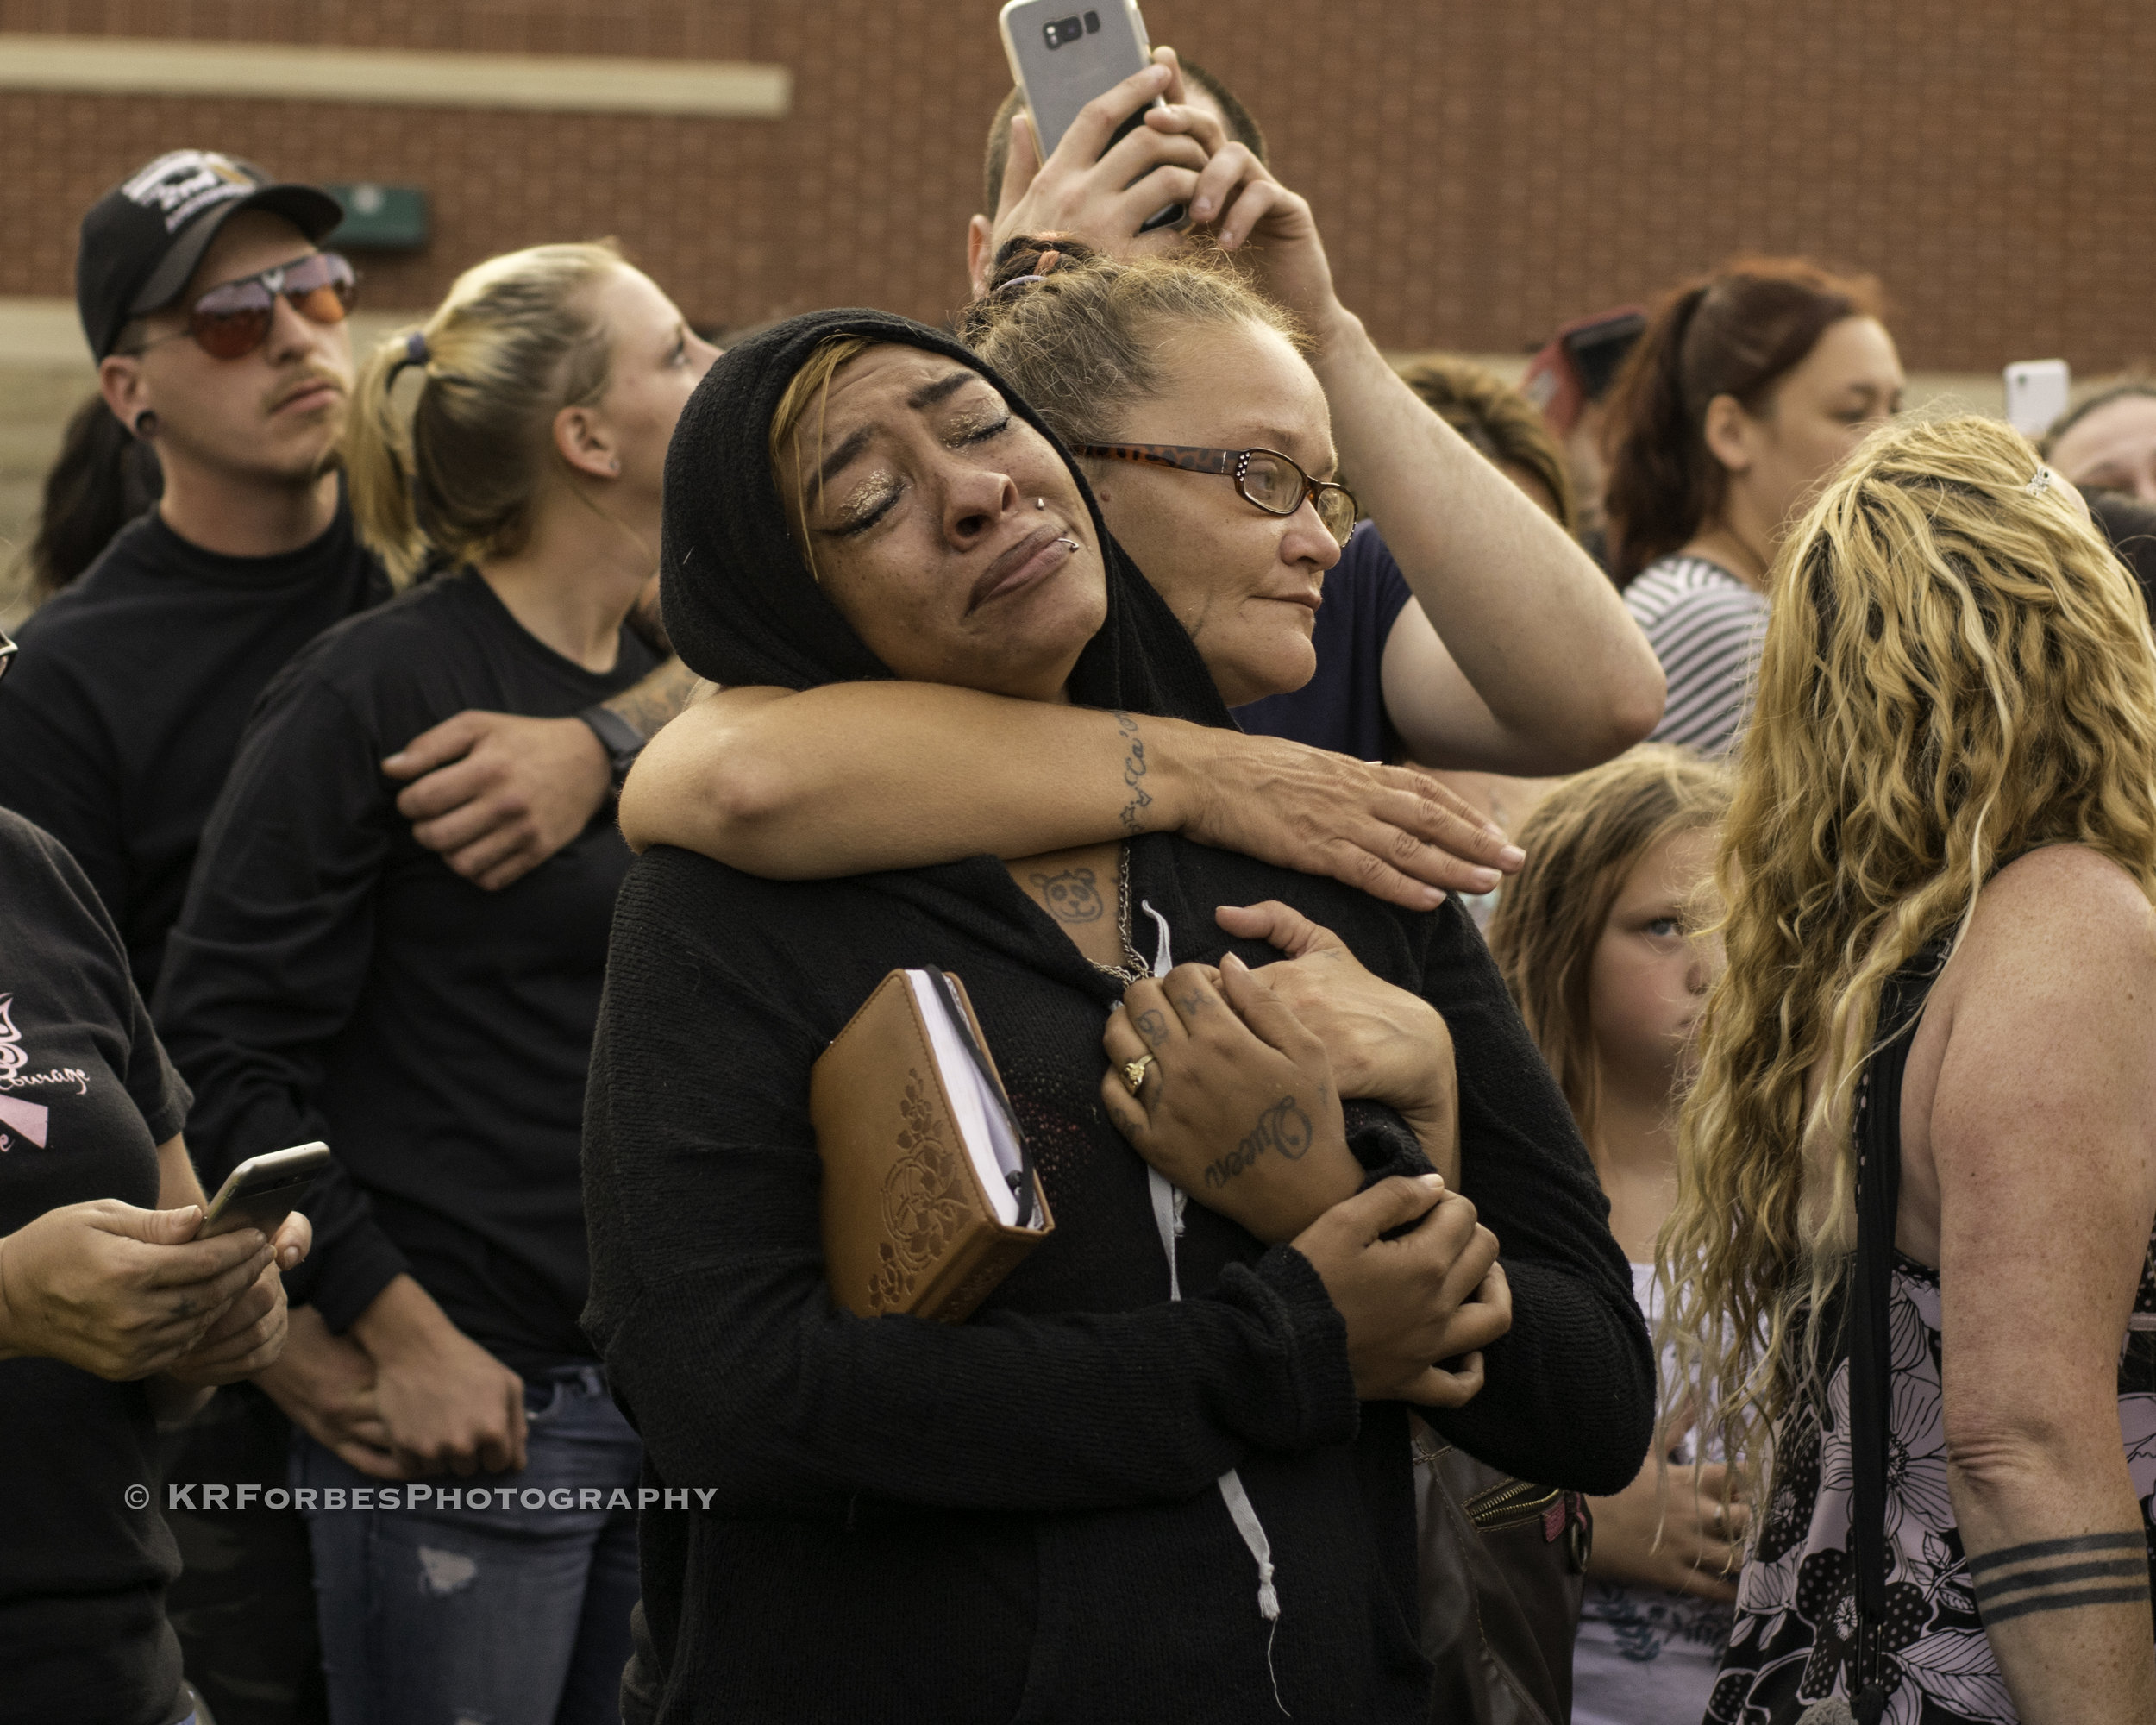 Donna Dalton Memorial; Columbus, OH - Community members join friends ands family of Donna Castleberry (Dalton) after Officer Andrew Mitchell, who was already under investigation, shot and killed her during an unauthorized stingclick image to view moreclick HERE for more information